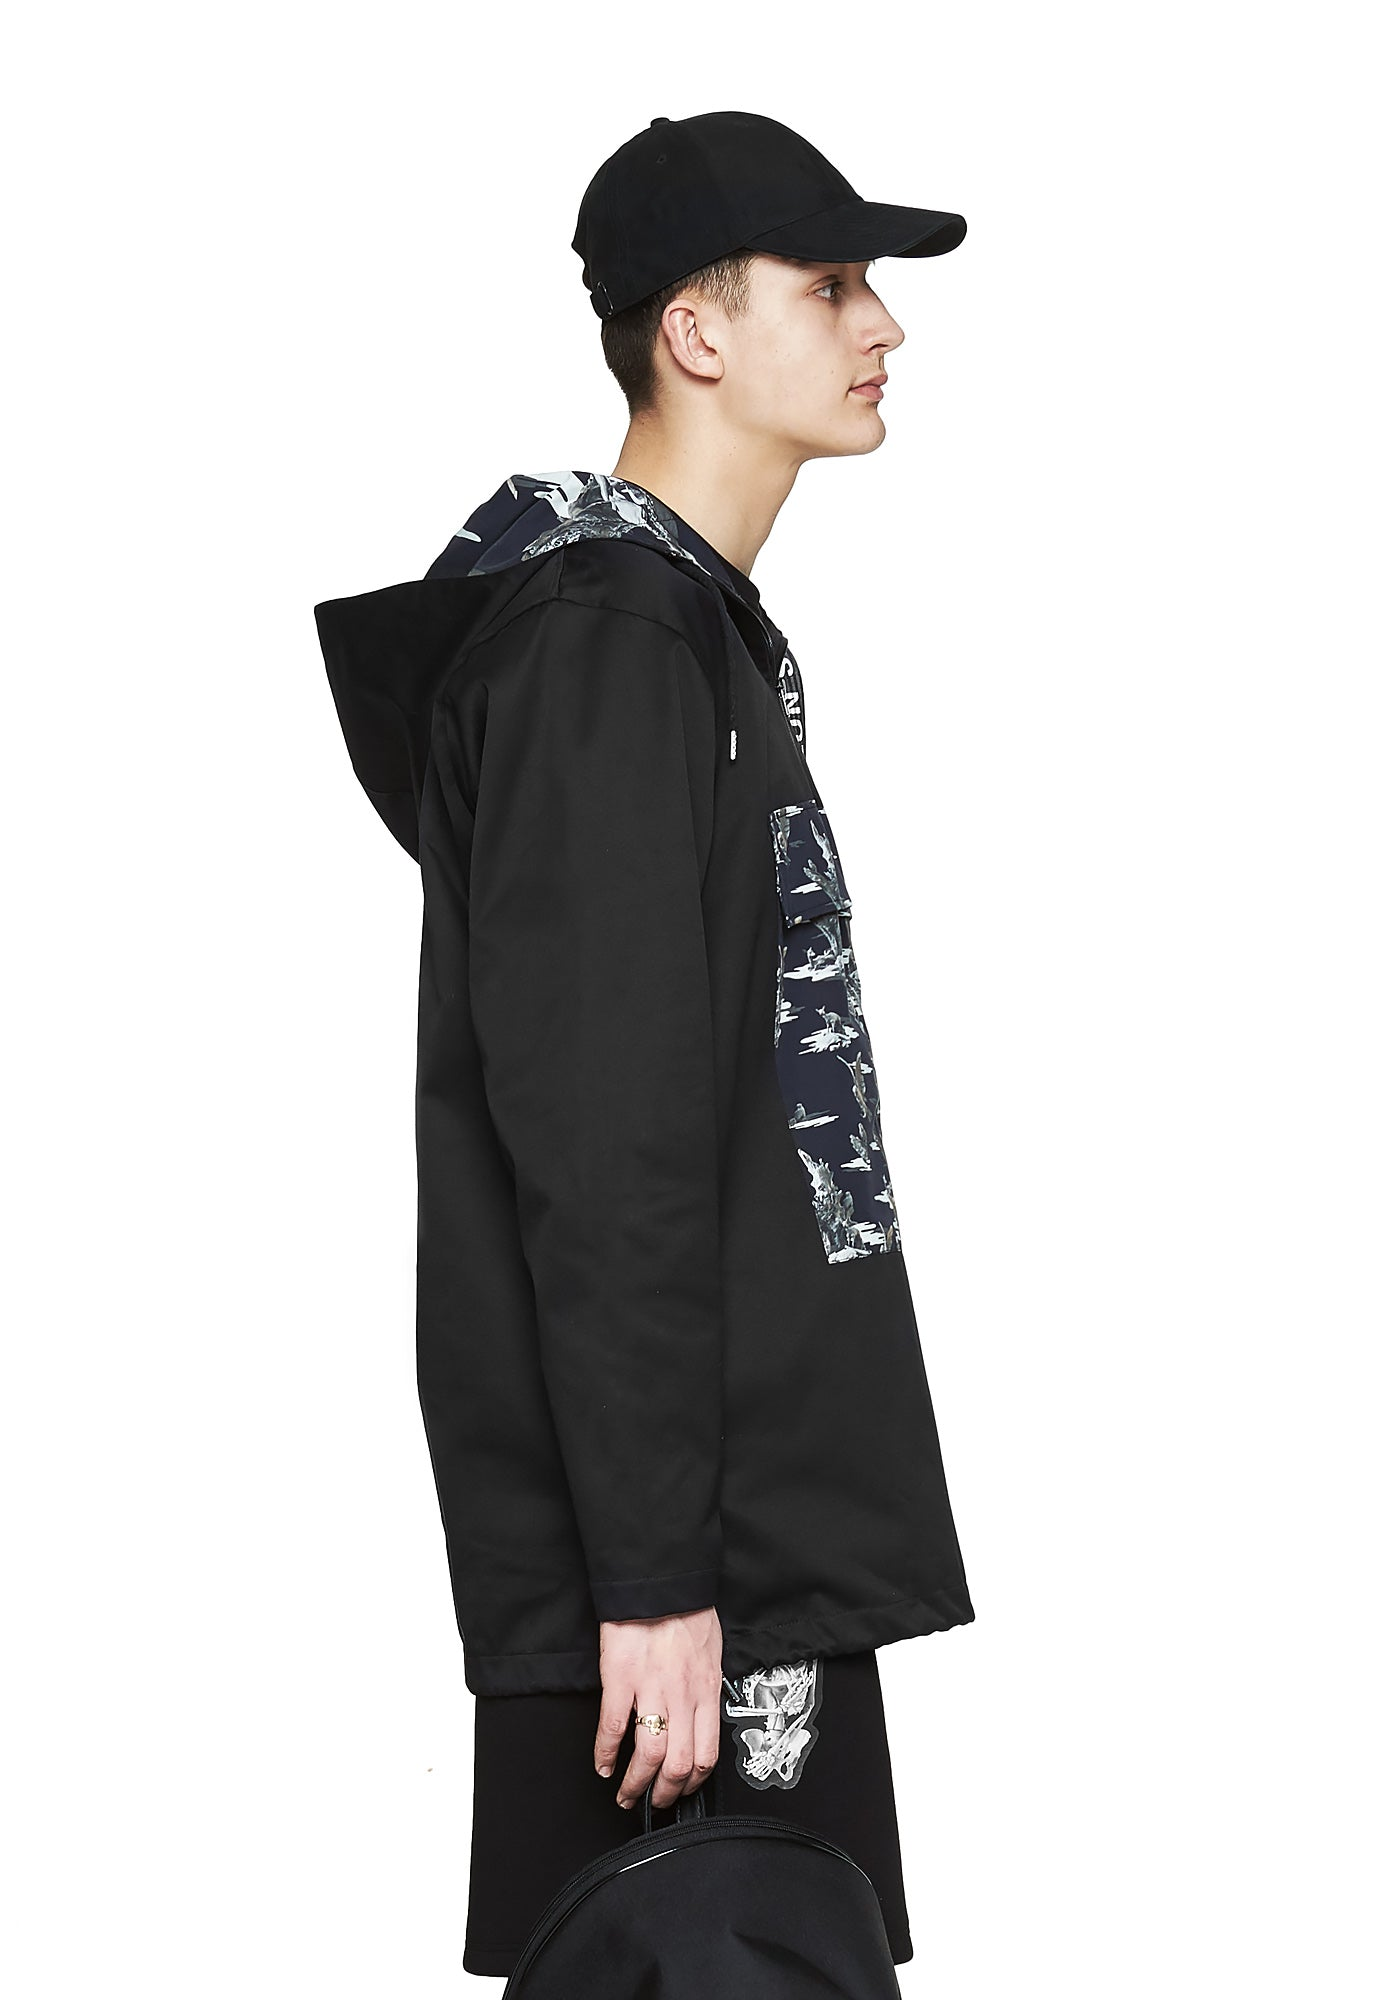 Nocturne Waterproof - Designer Brand - This Is Not Clothing – Lookbook Photo 3